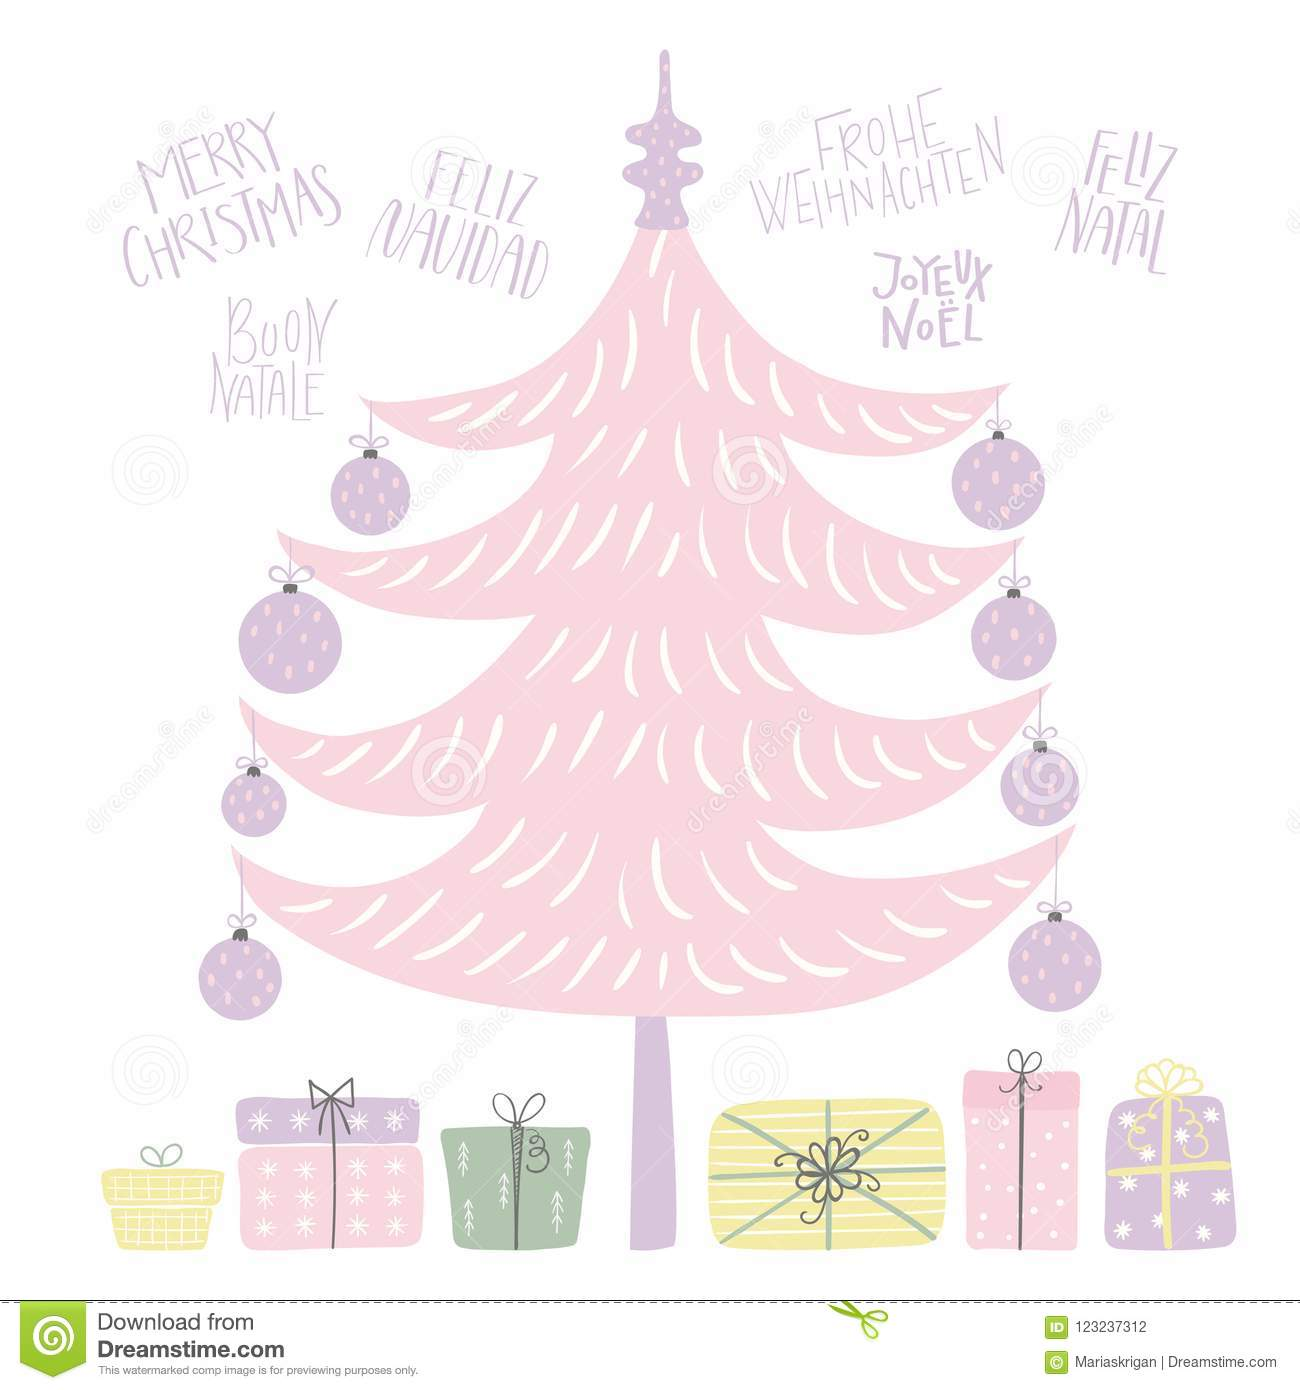 Christmas tree card stock vector. Illustration of graphic - 123237312